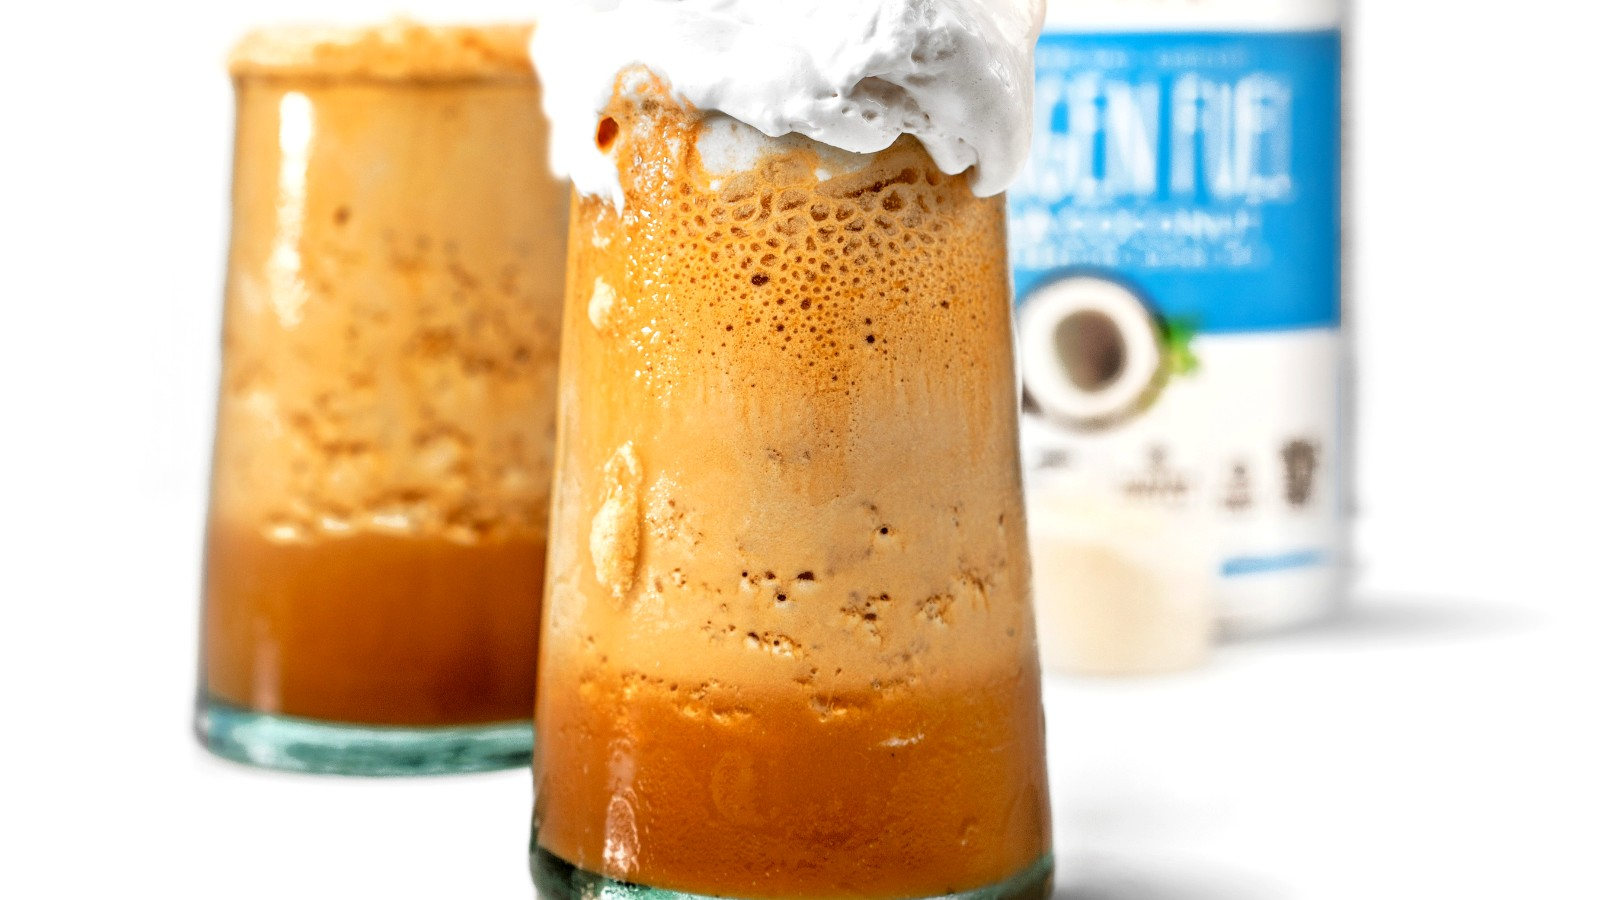 Image of No Dairy Blended Iced Collagen Coffee